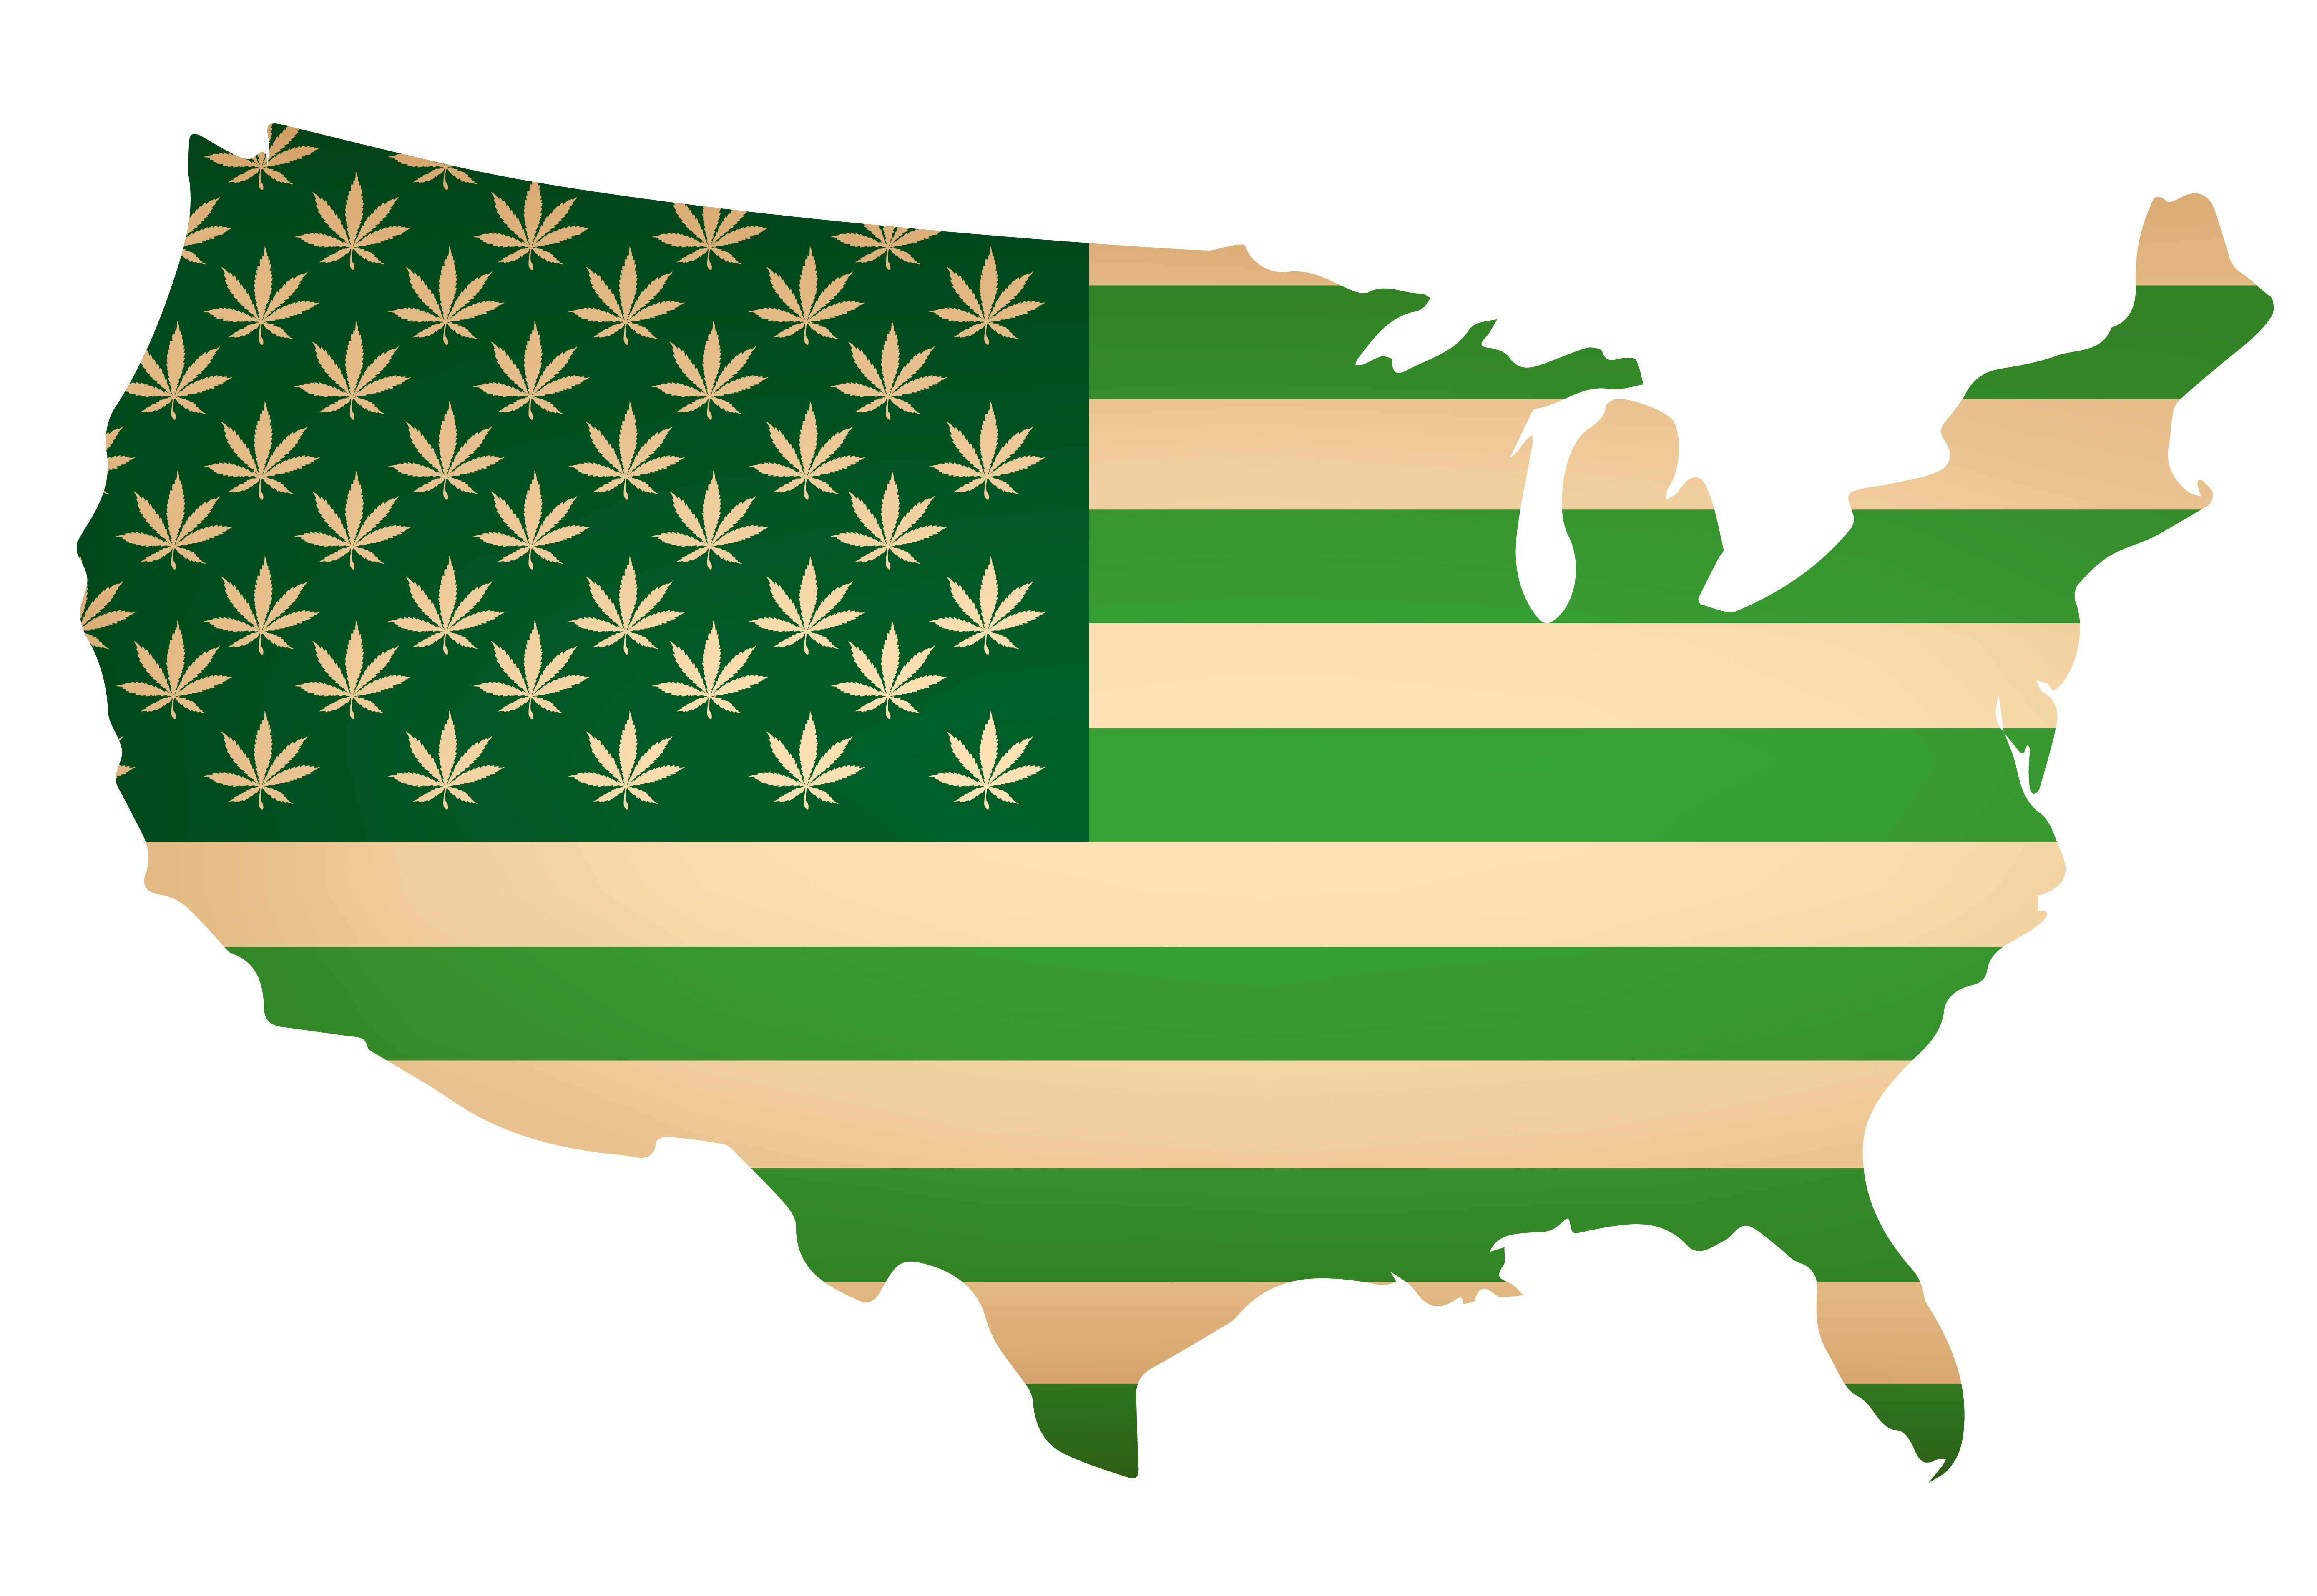 Nine Out of Ten Americans Support Cannabis Legalization